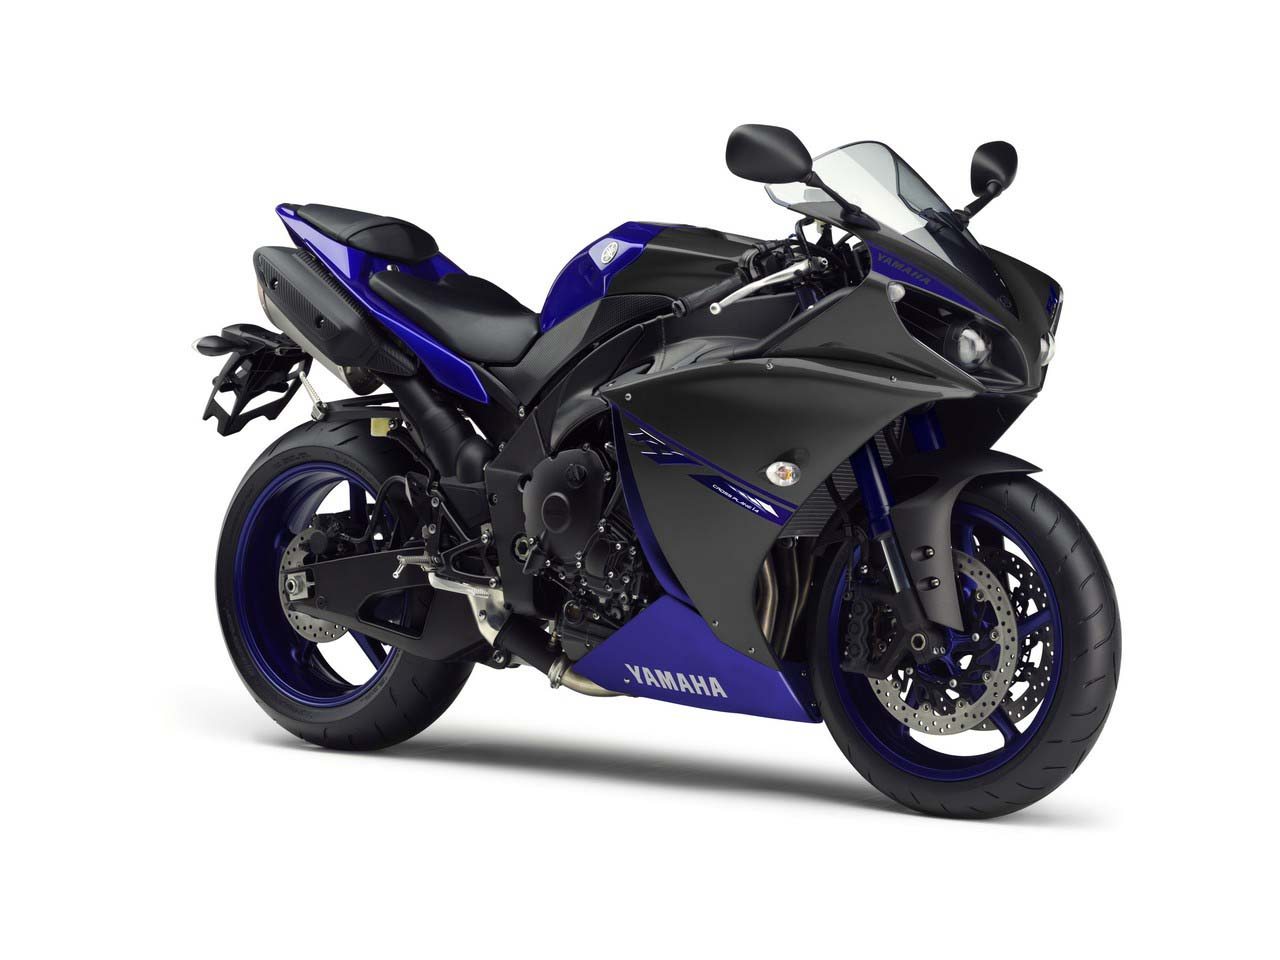 yamaha r1 blue bike - photo #7